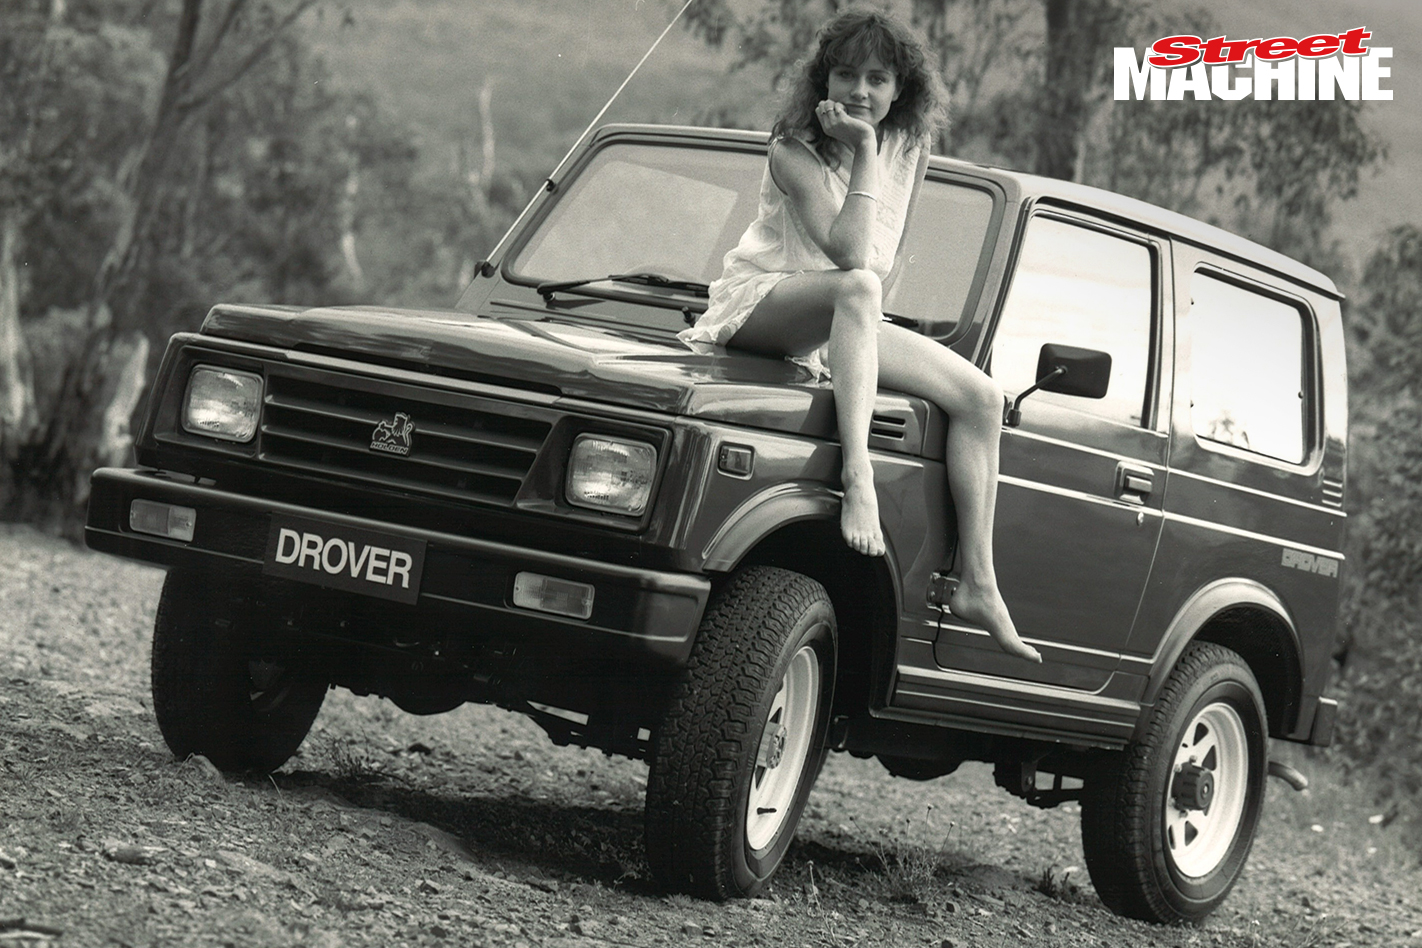 Holden Drover 1